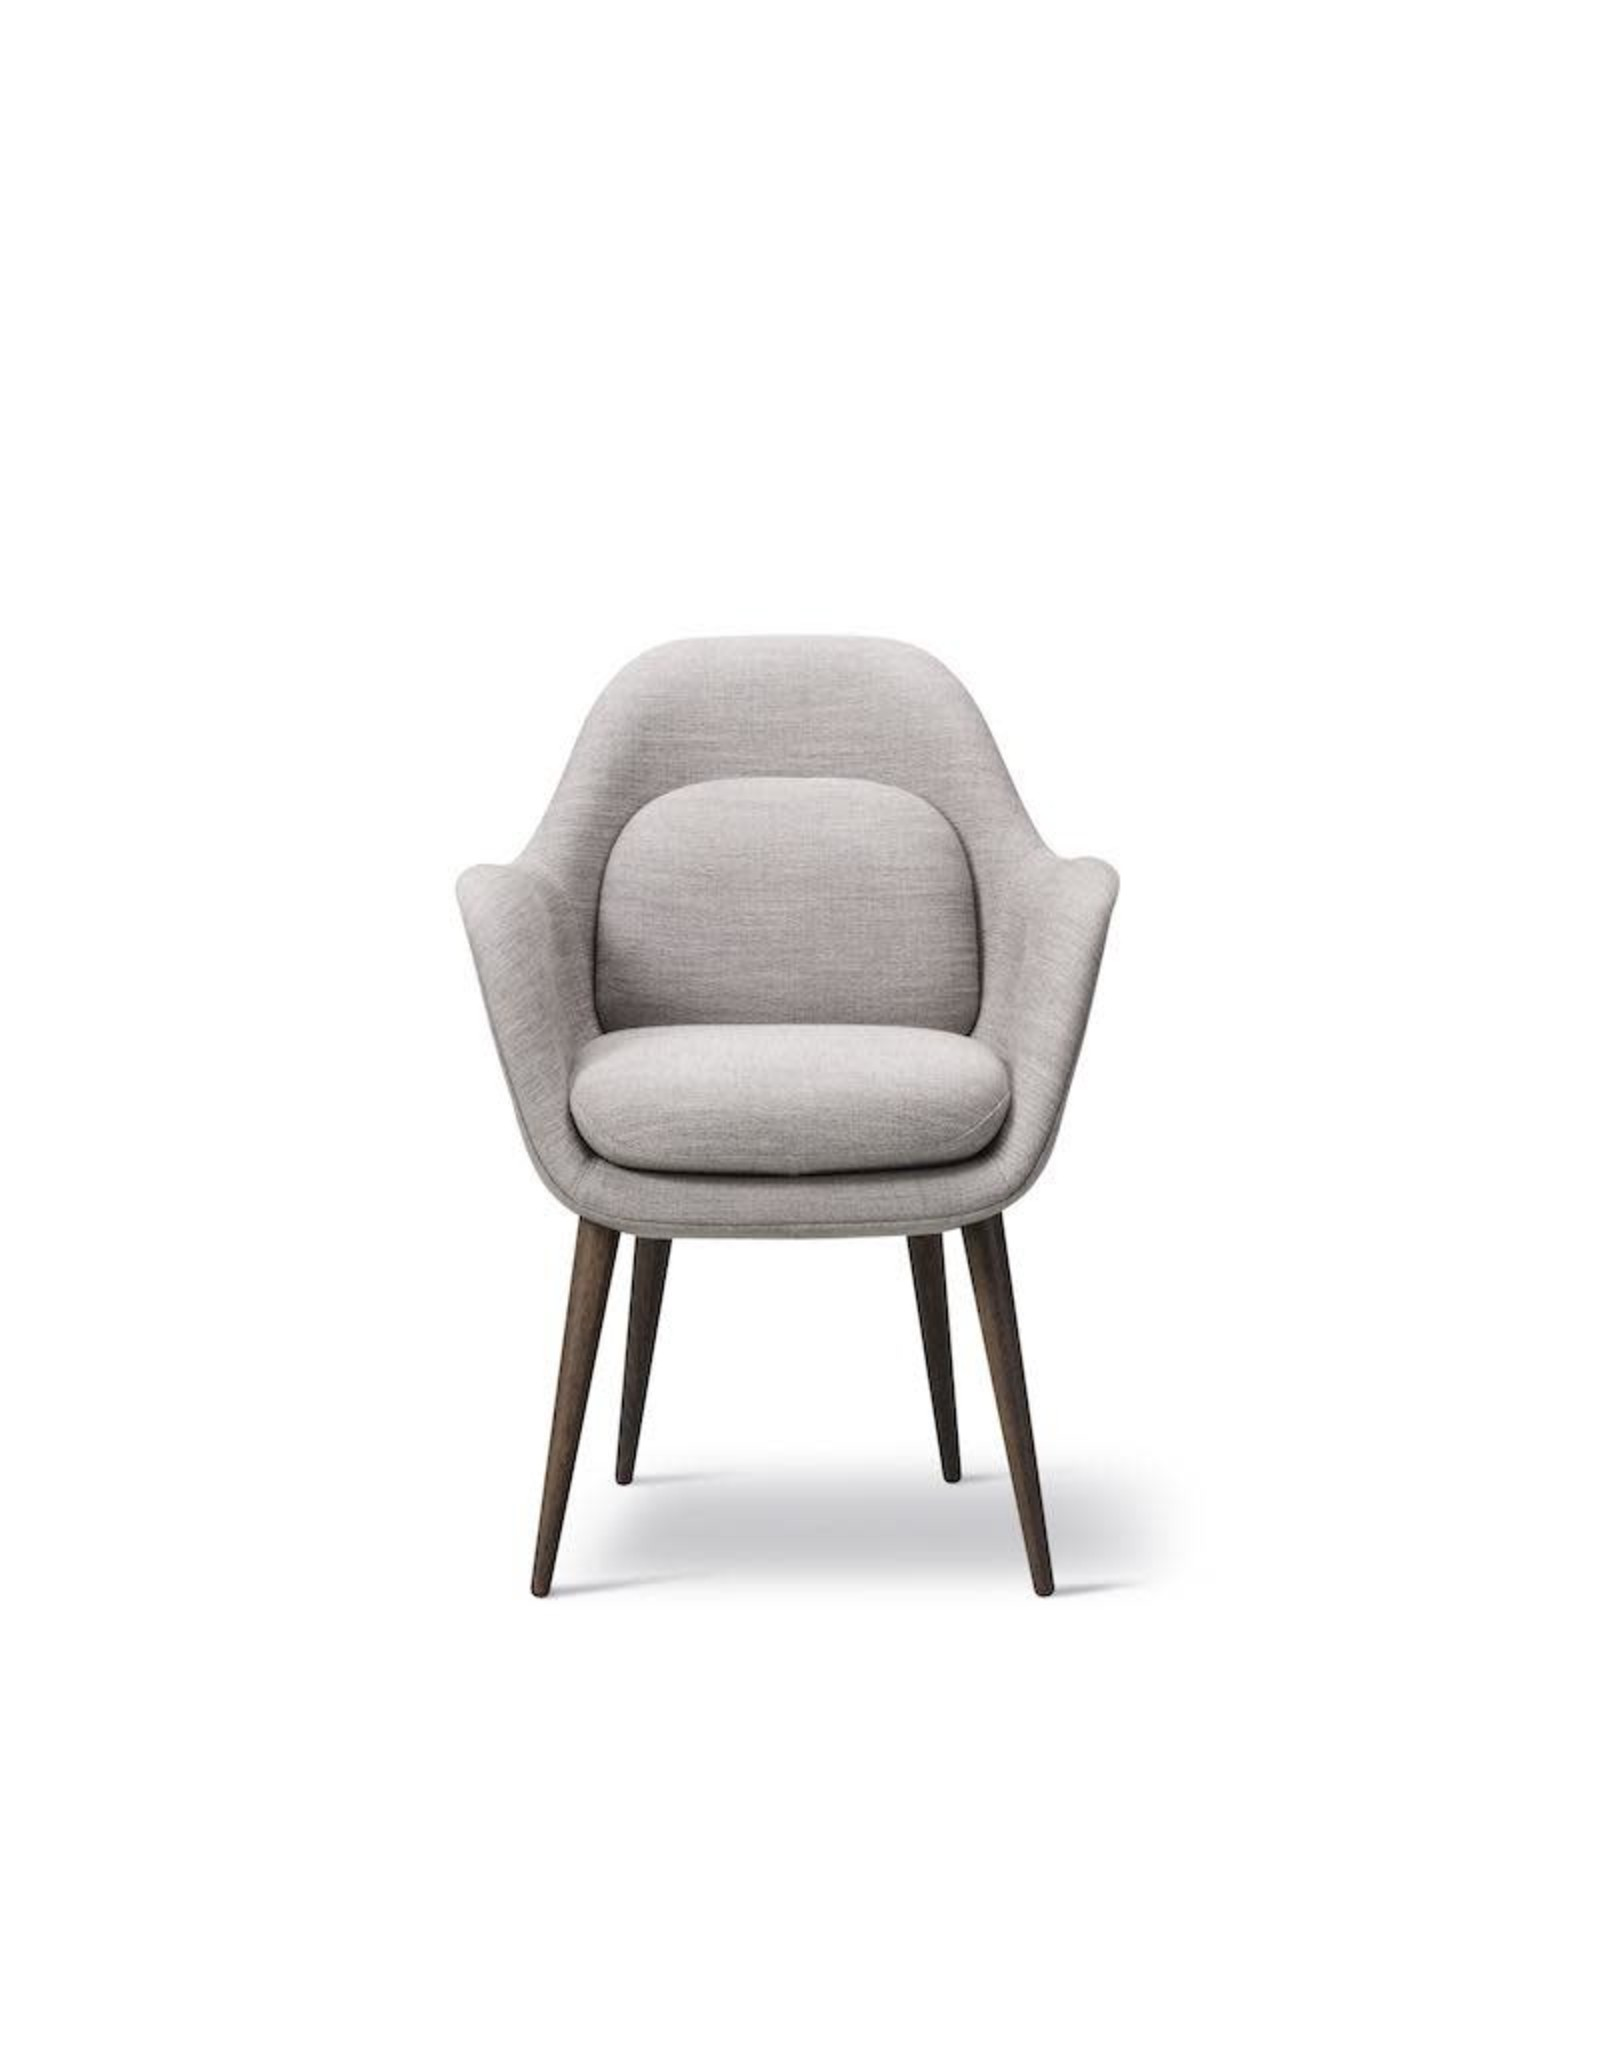 1777 SWOON CHAIR